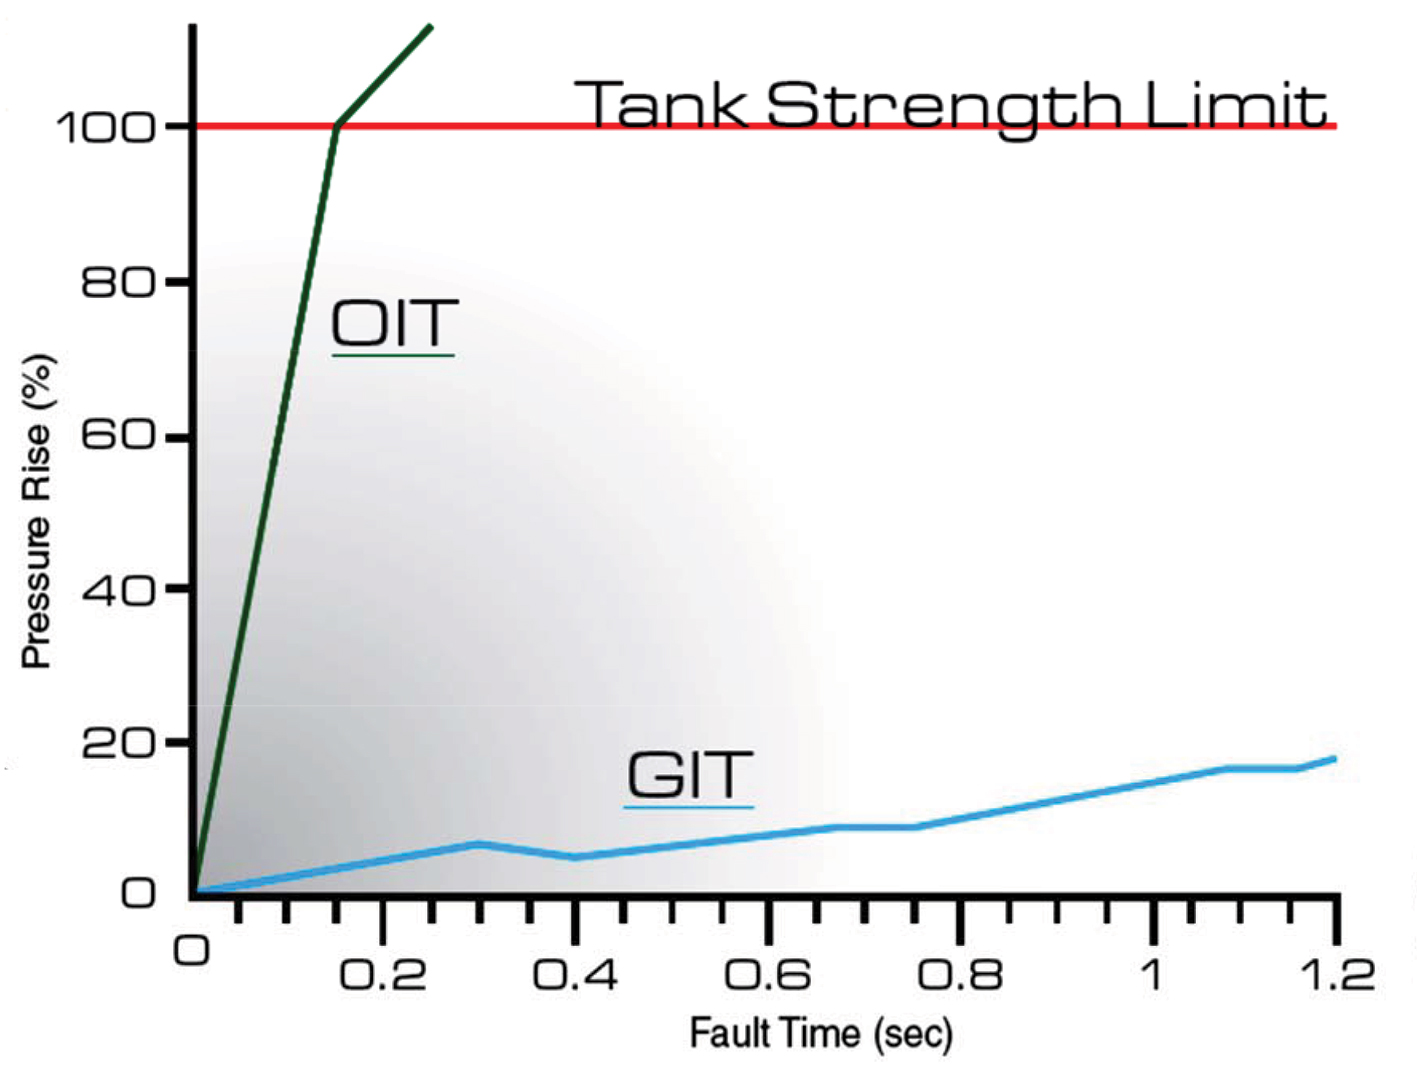 Gas insulated power transformers: A growing technology - EE